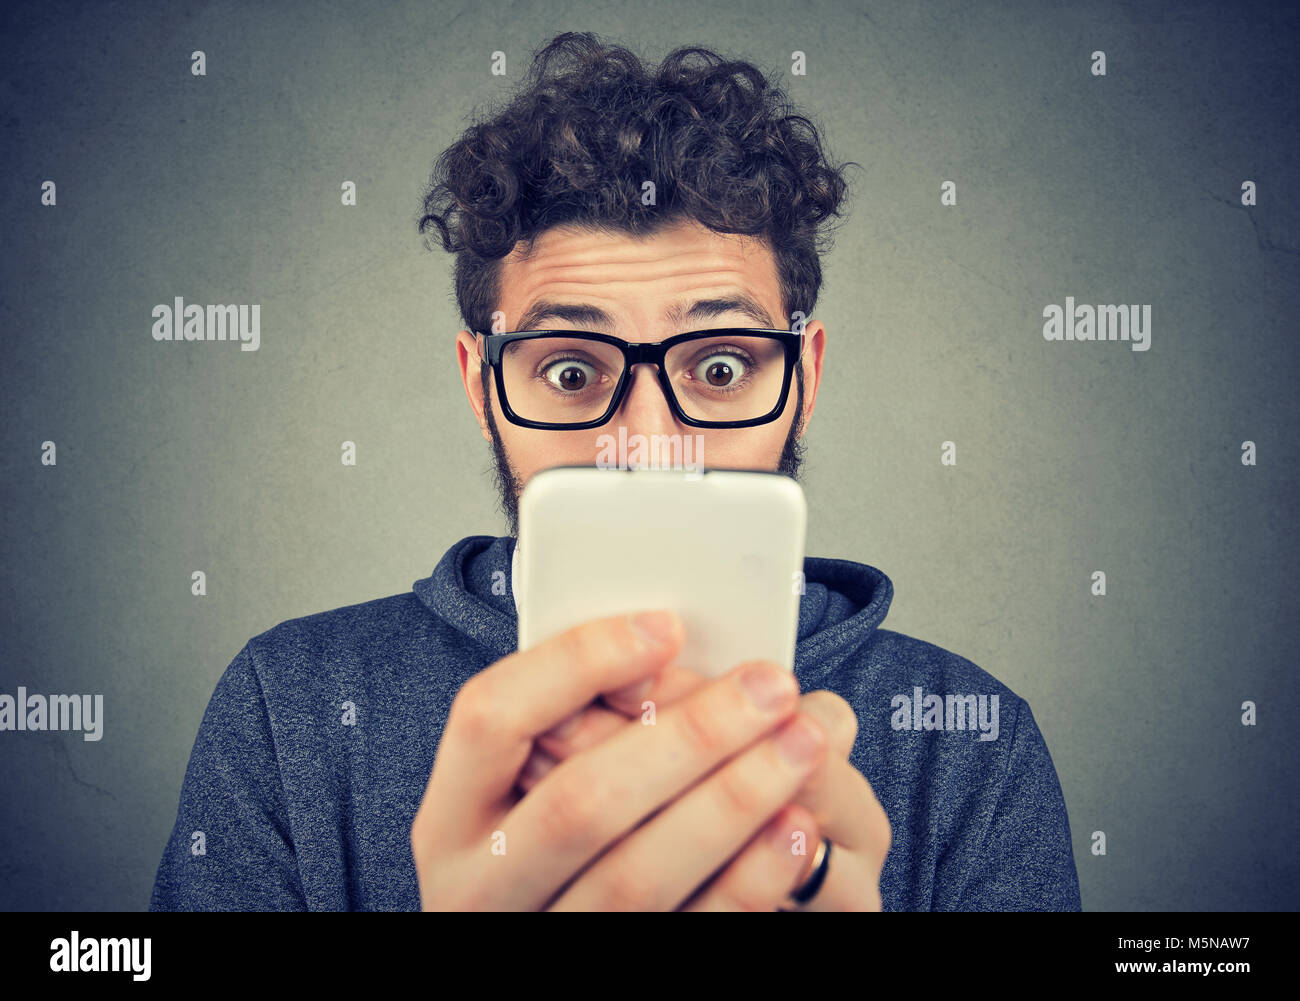 Young bearded man in glasses using phone with expression of great astonishment. - Stock Image